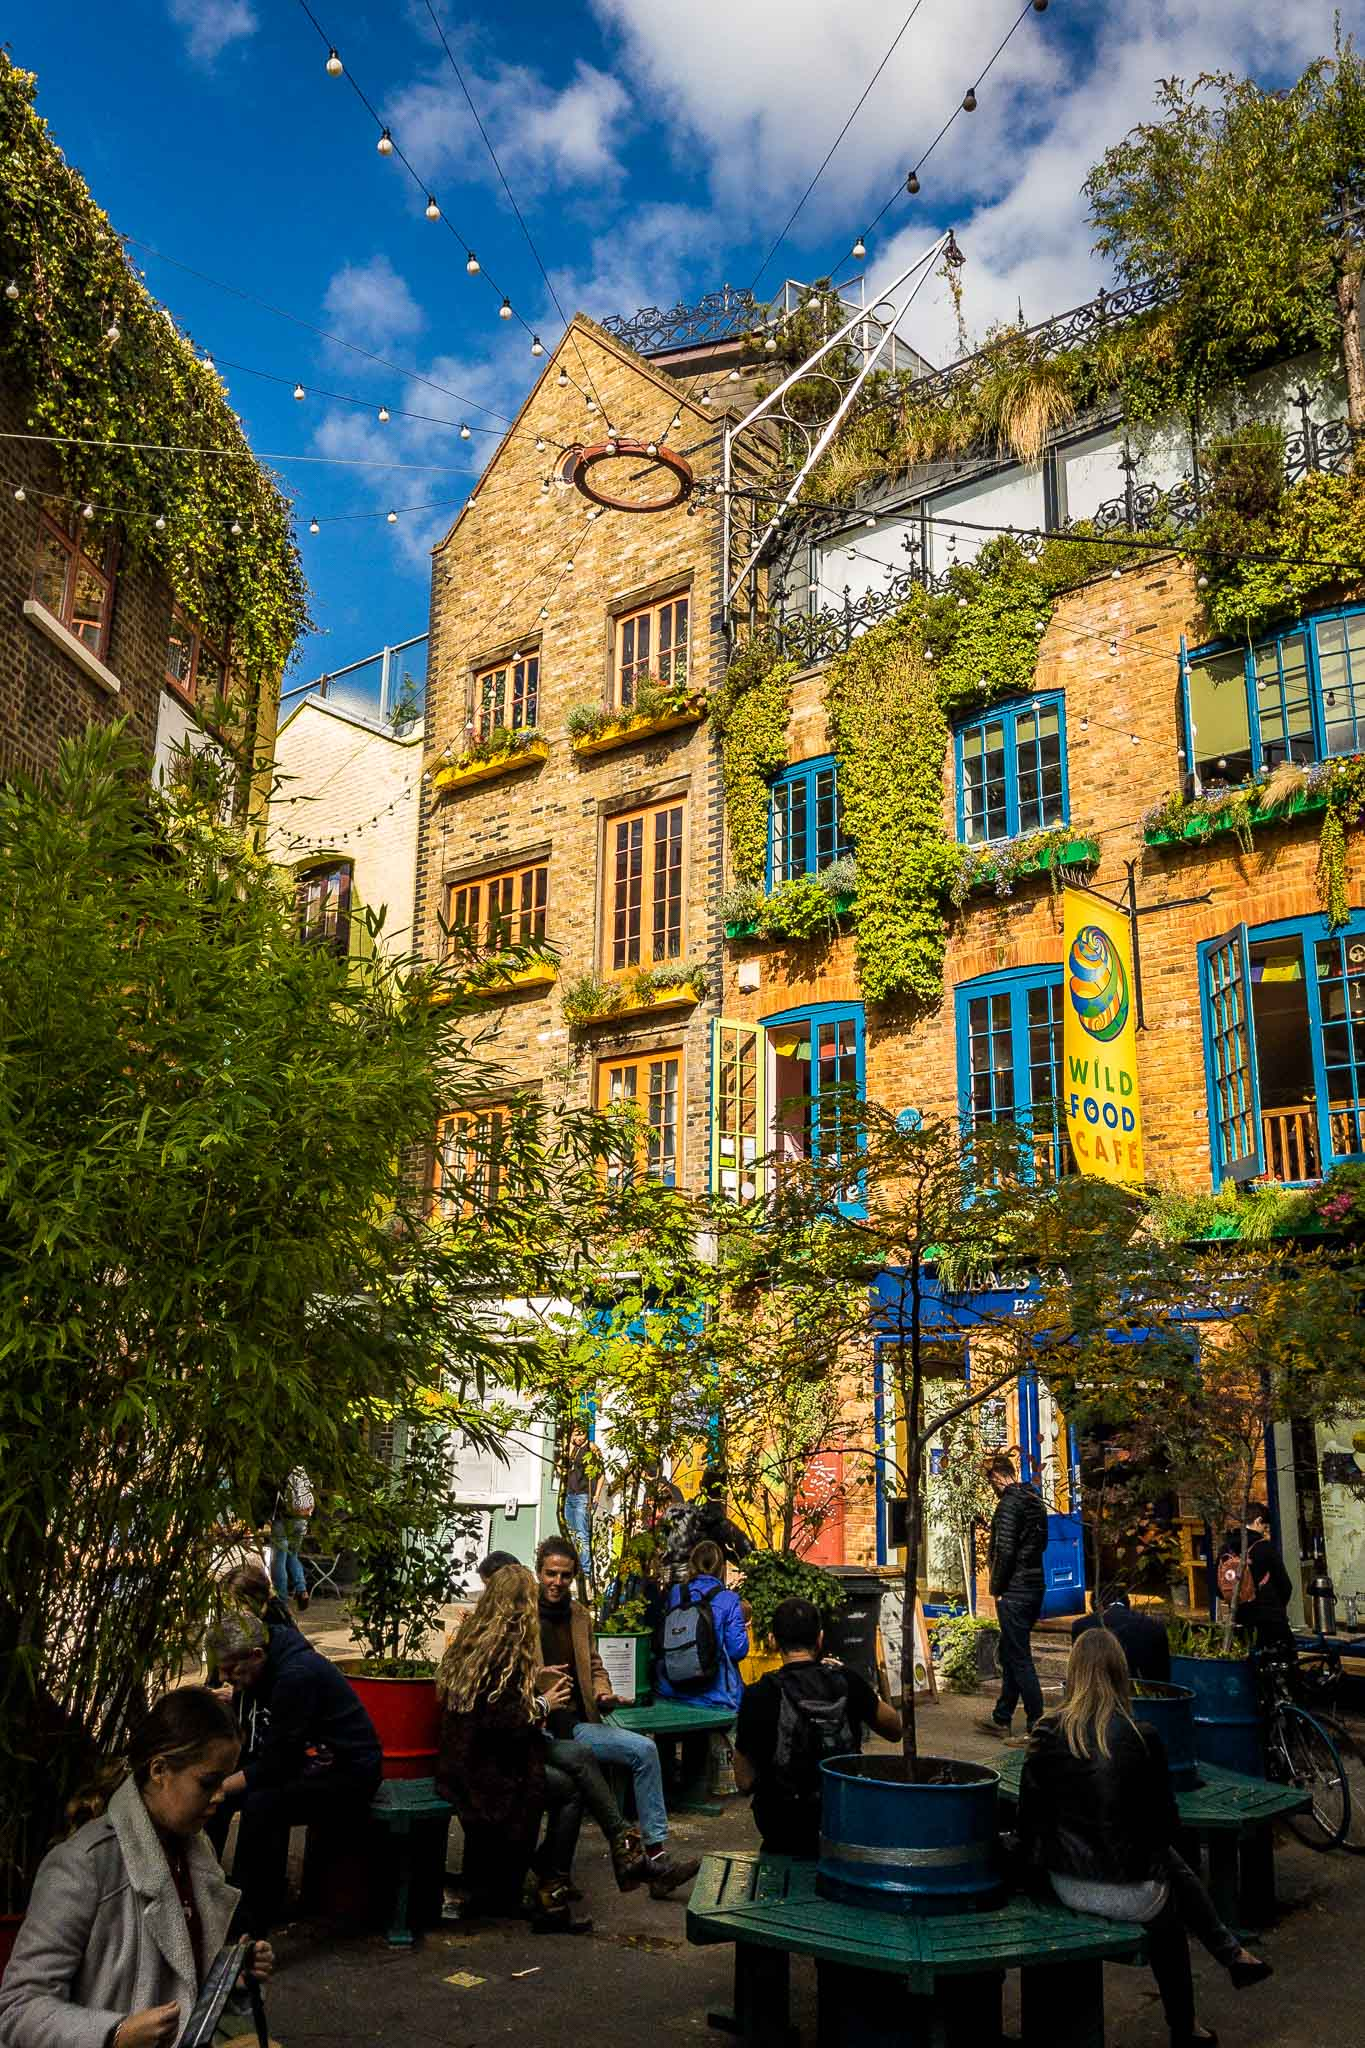 Neal's Yard near Covent Garden, London